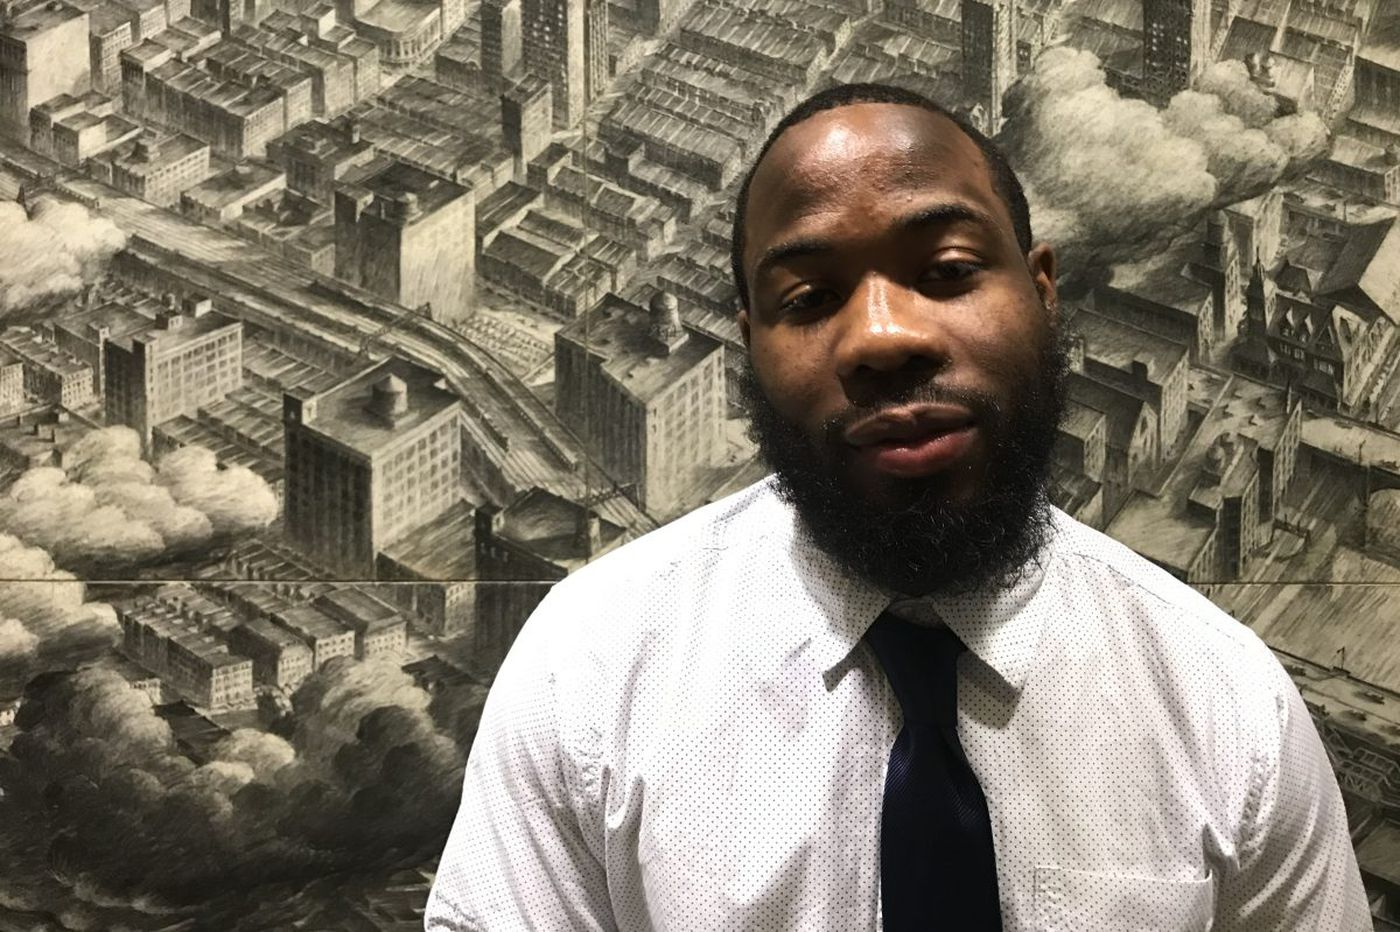 Judge approves Philly DA's request, clears man of murder after 11 years behind bars